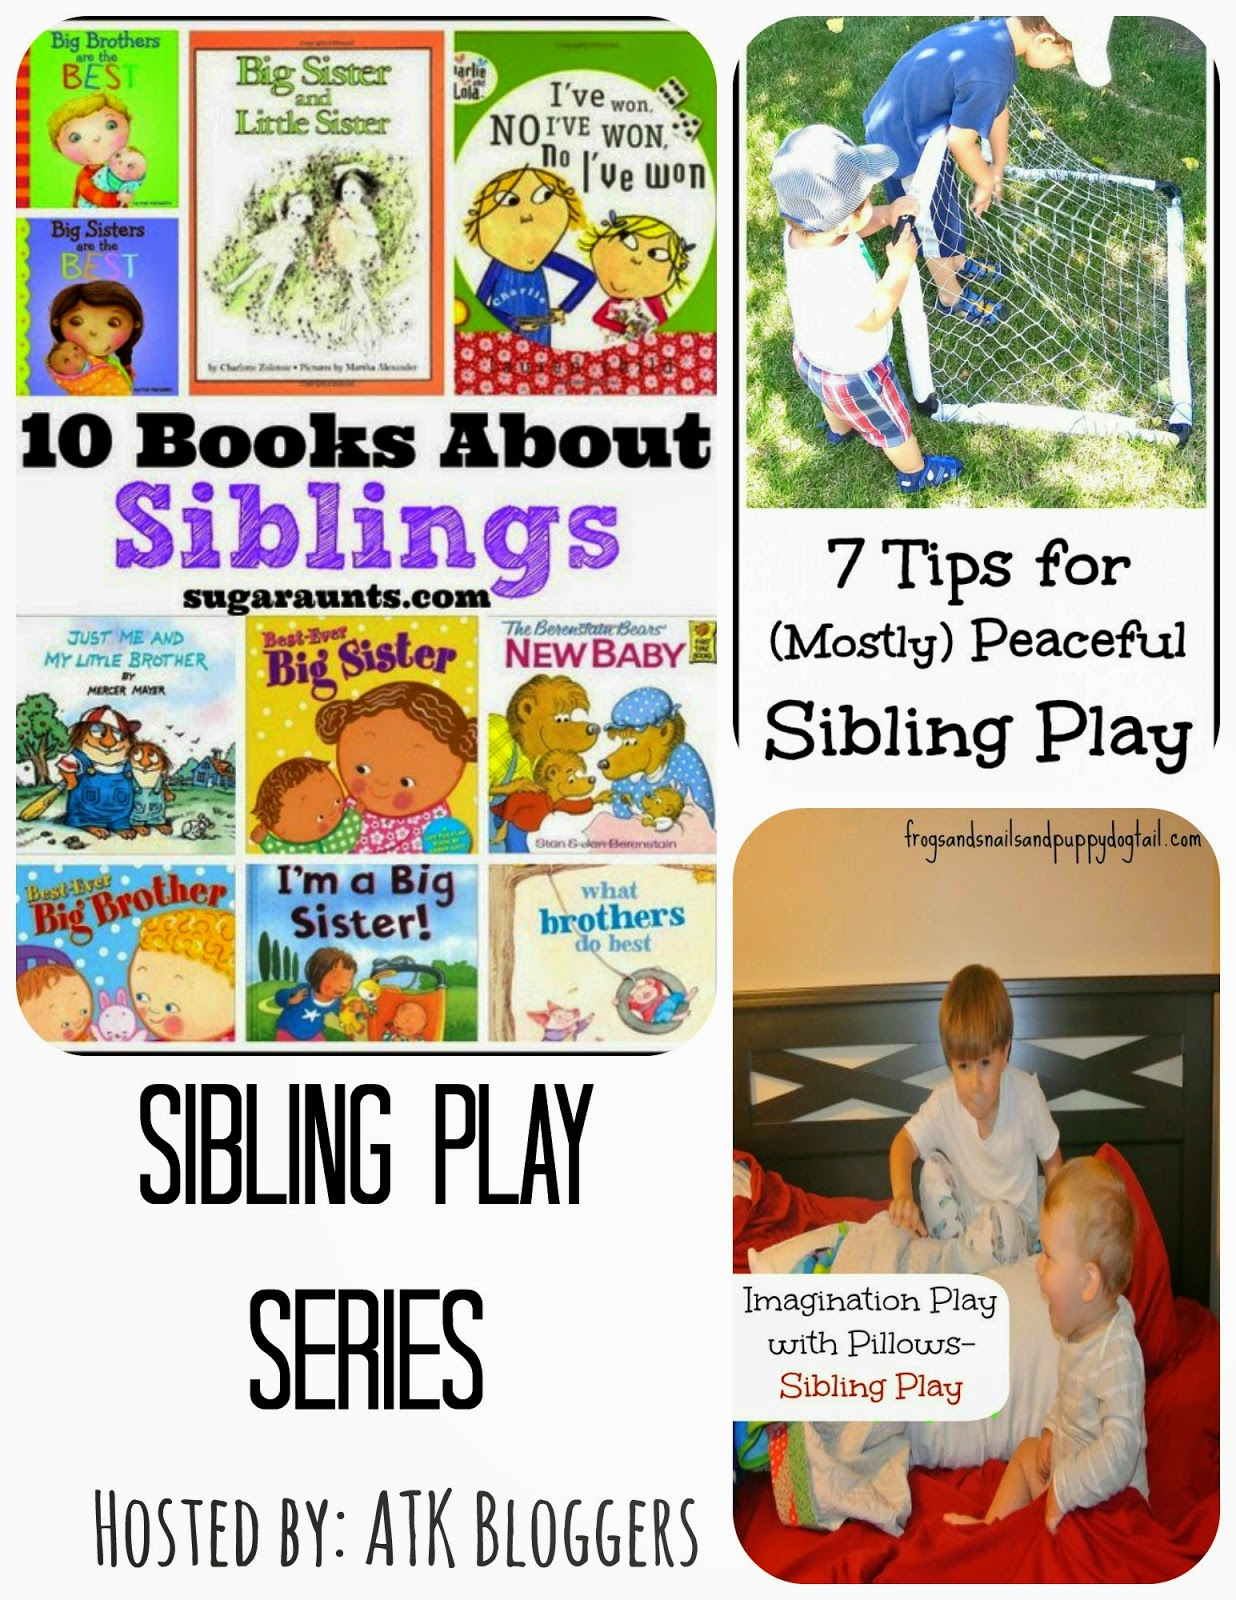 Sibling Play Series